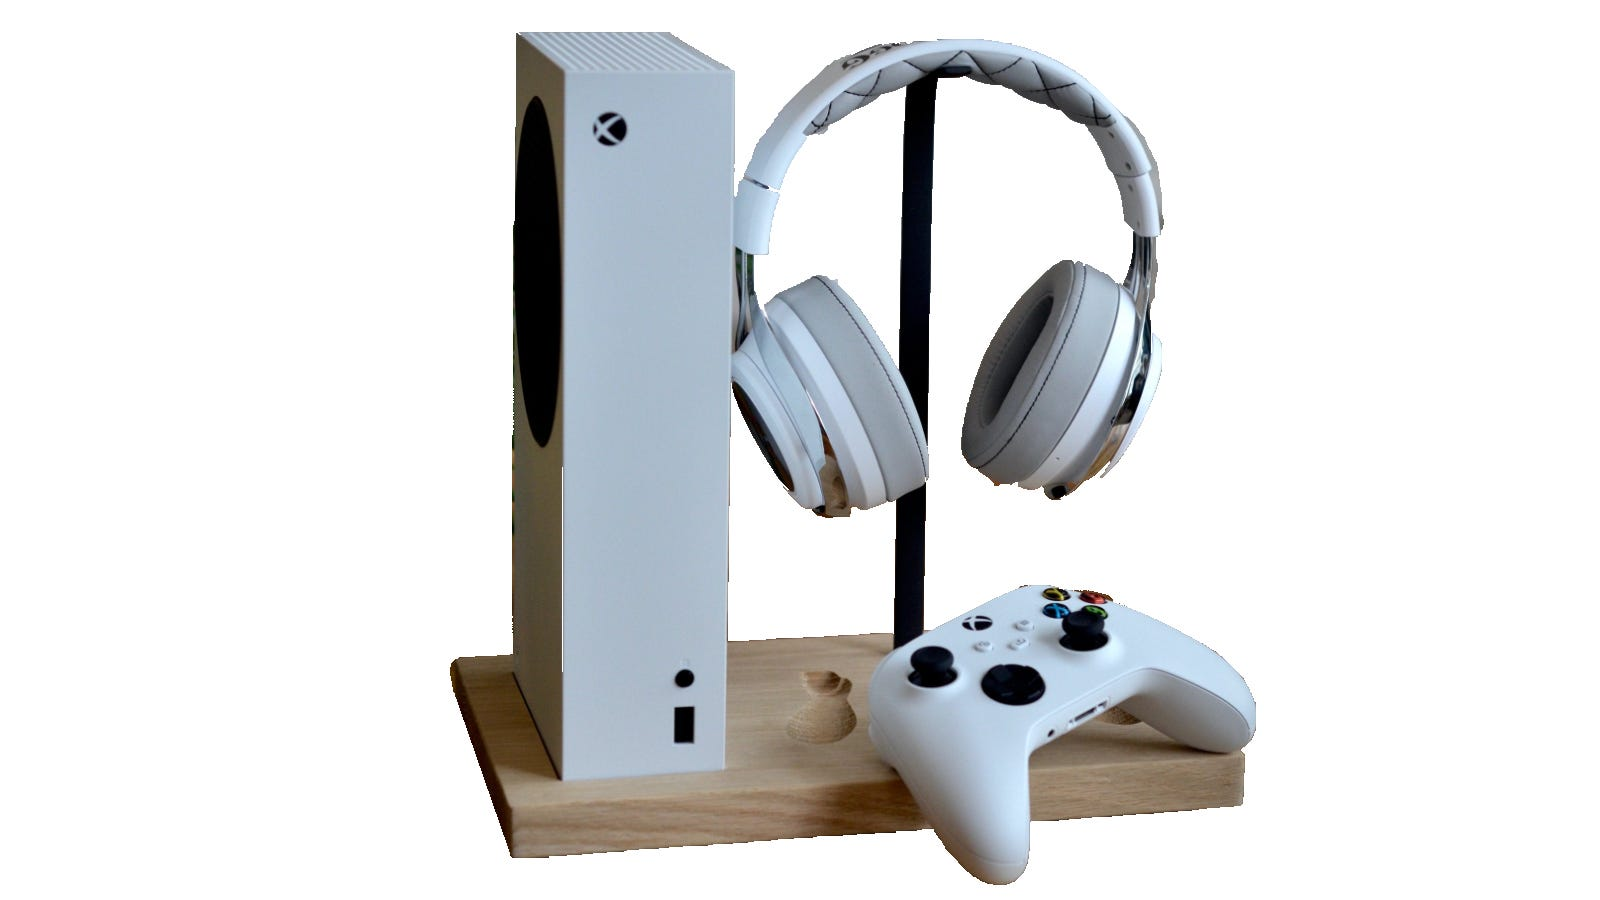 The Trifecta display stand with Xbox, Xbox Core Controller, and wireless gaming headset on displayed on it.